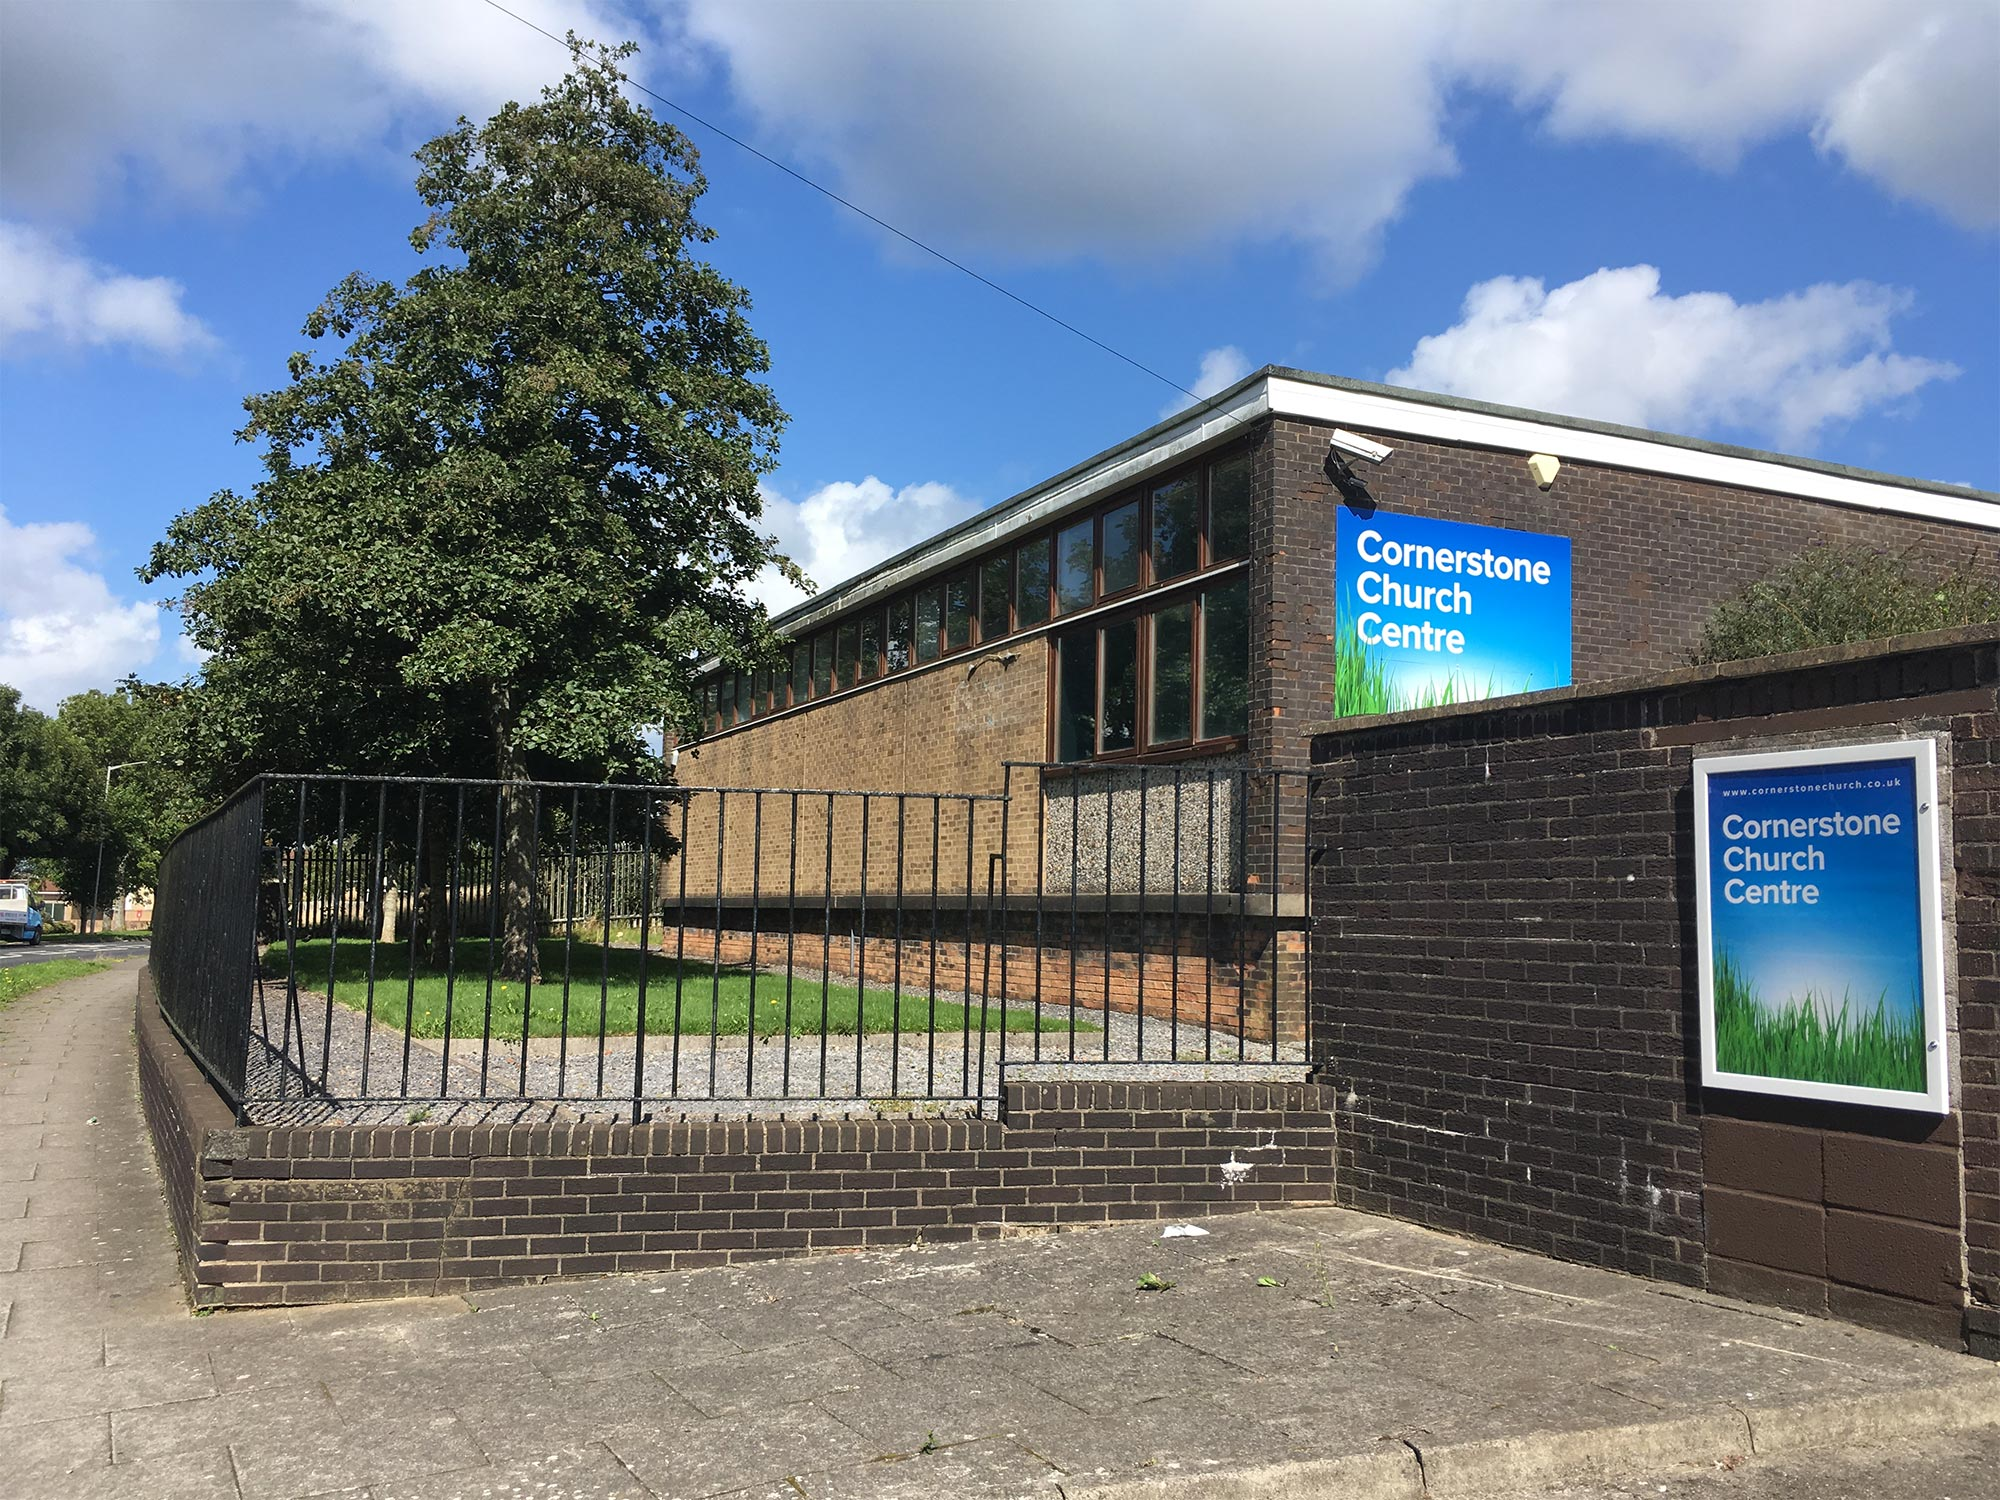 Community & Projects - Penlan is the centre for our church offices and community projects. Projects include Little Rascals Parent and Toddler Group, Gap Food, Gap Extra, Youth, and various special events. Find us at 32 Mynydd Newydd Road, Penlan, Swansea SA5 5AE.